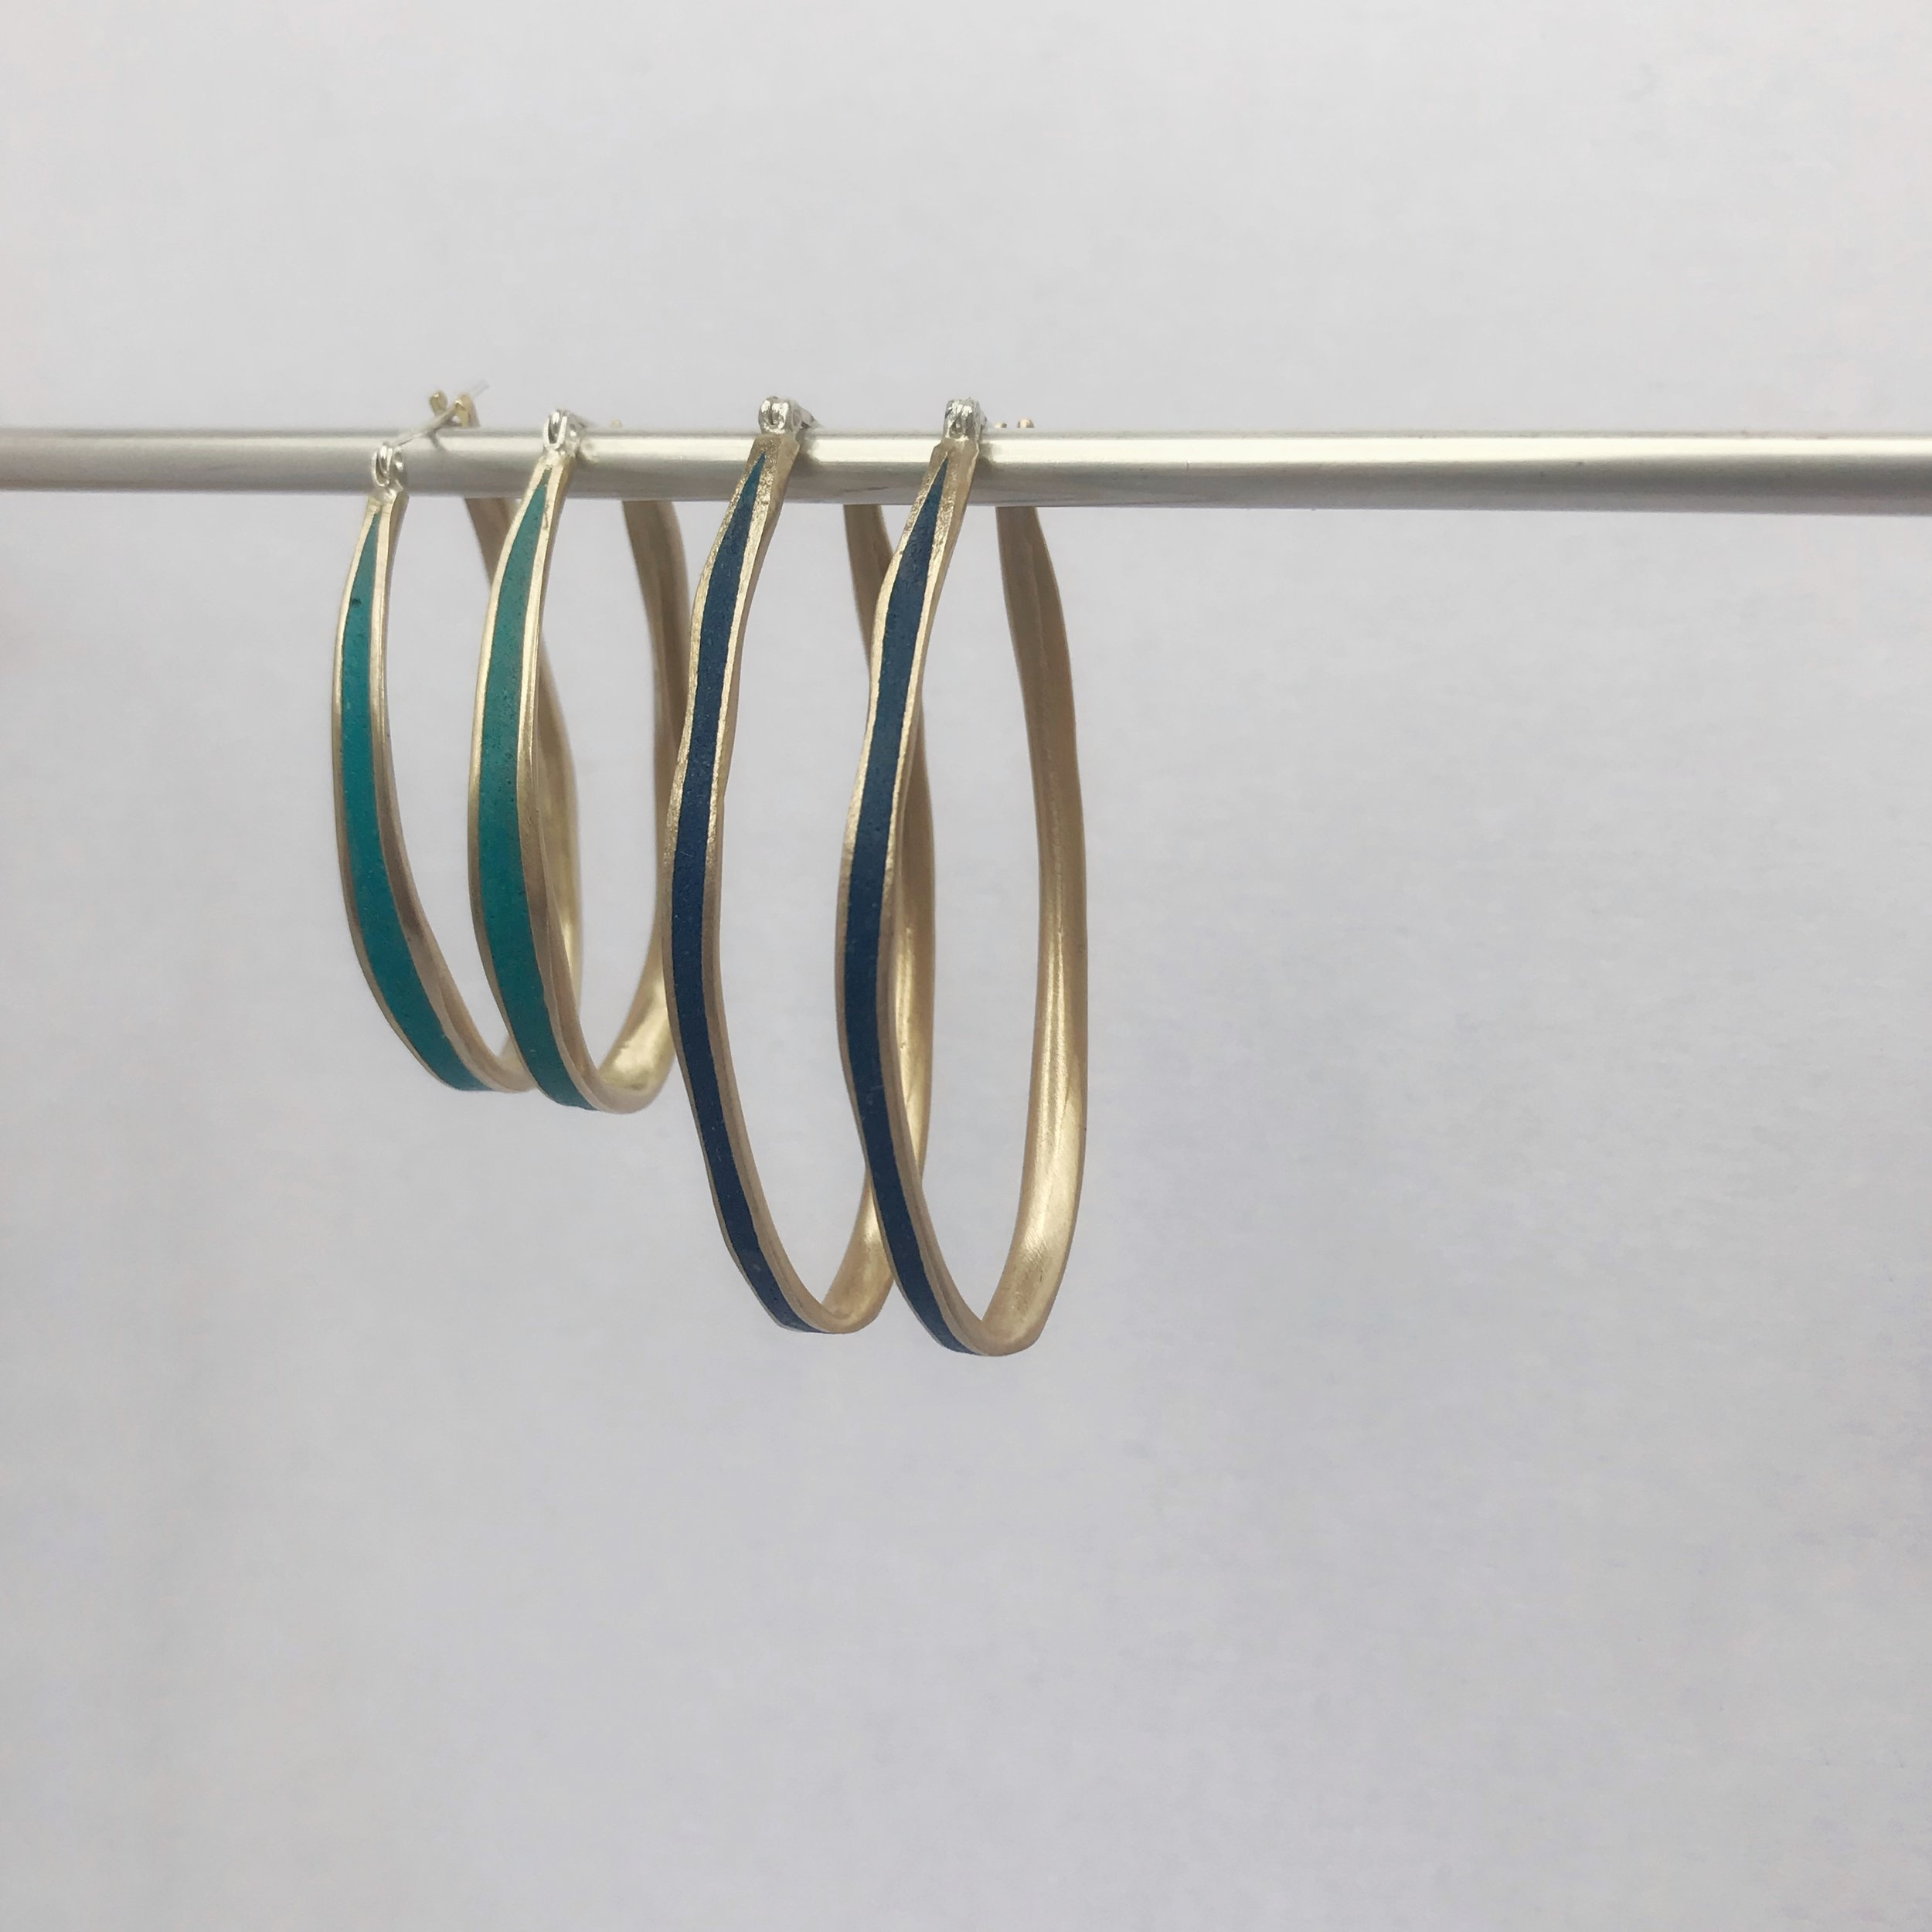 Medium & Large Oval Hoops